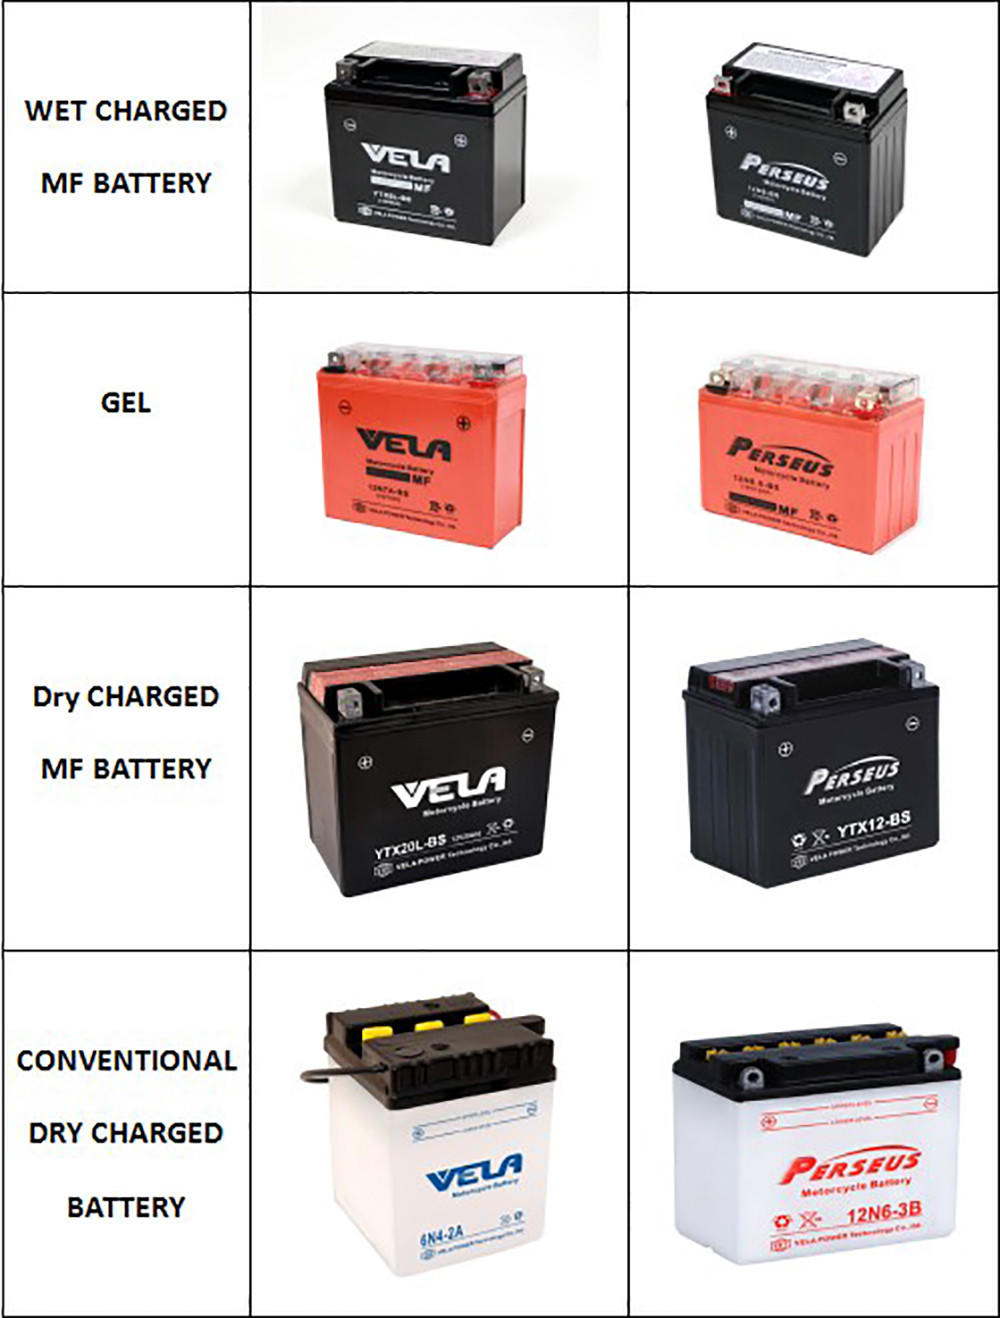 VELA gel type battery perfect for autocycle-2